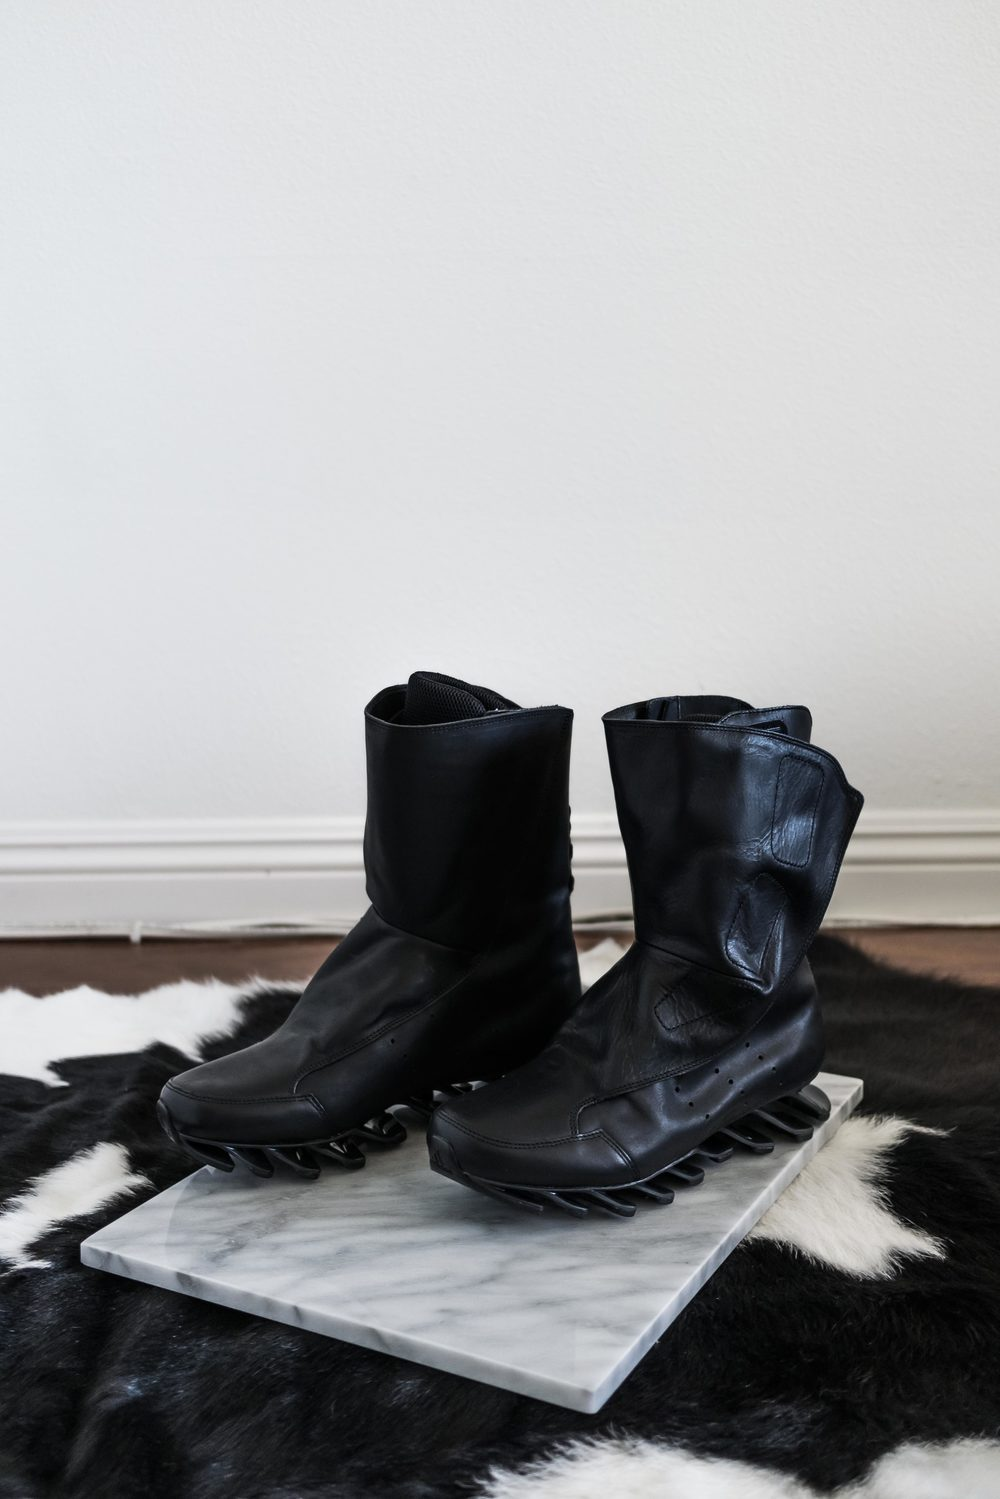 Meet the   Rick Owens boots   in all their glory - a divine combination of form meets function.